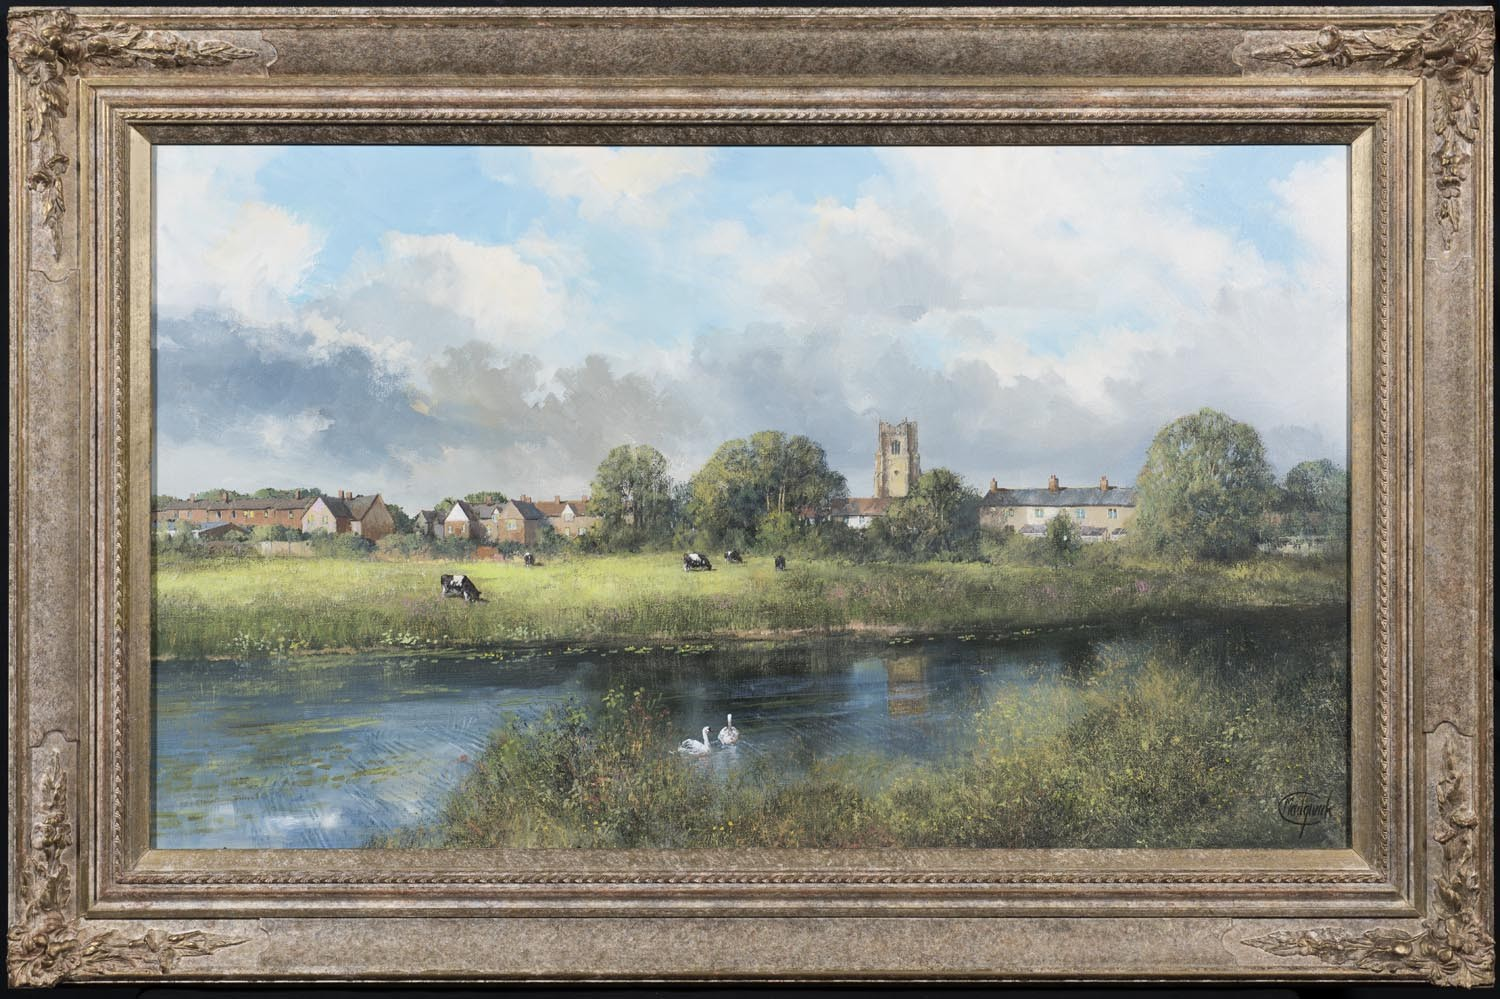 Water Meadows, Sudbury, Suffolk - SOLD